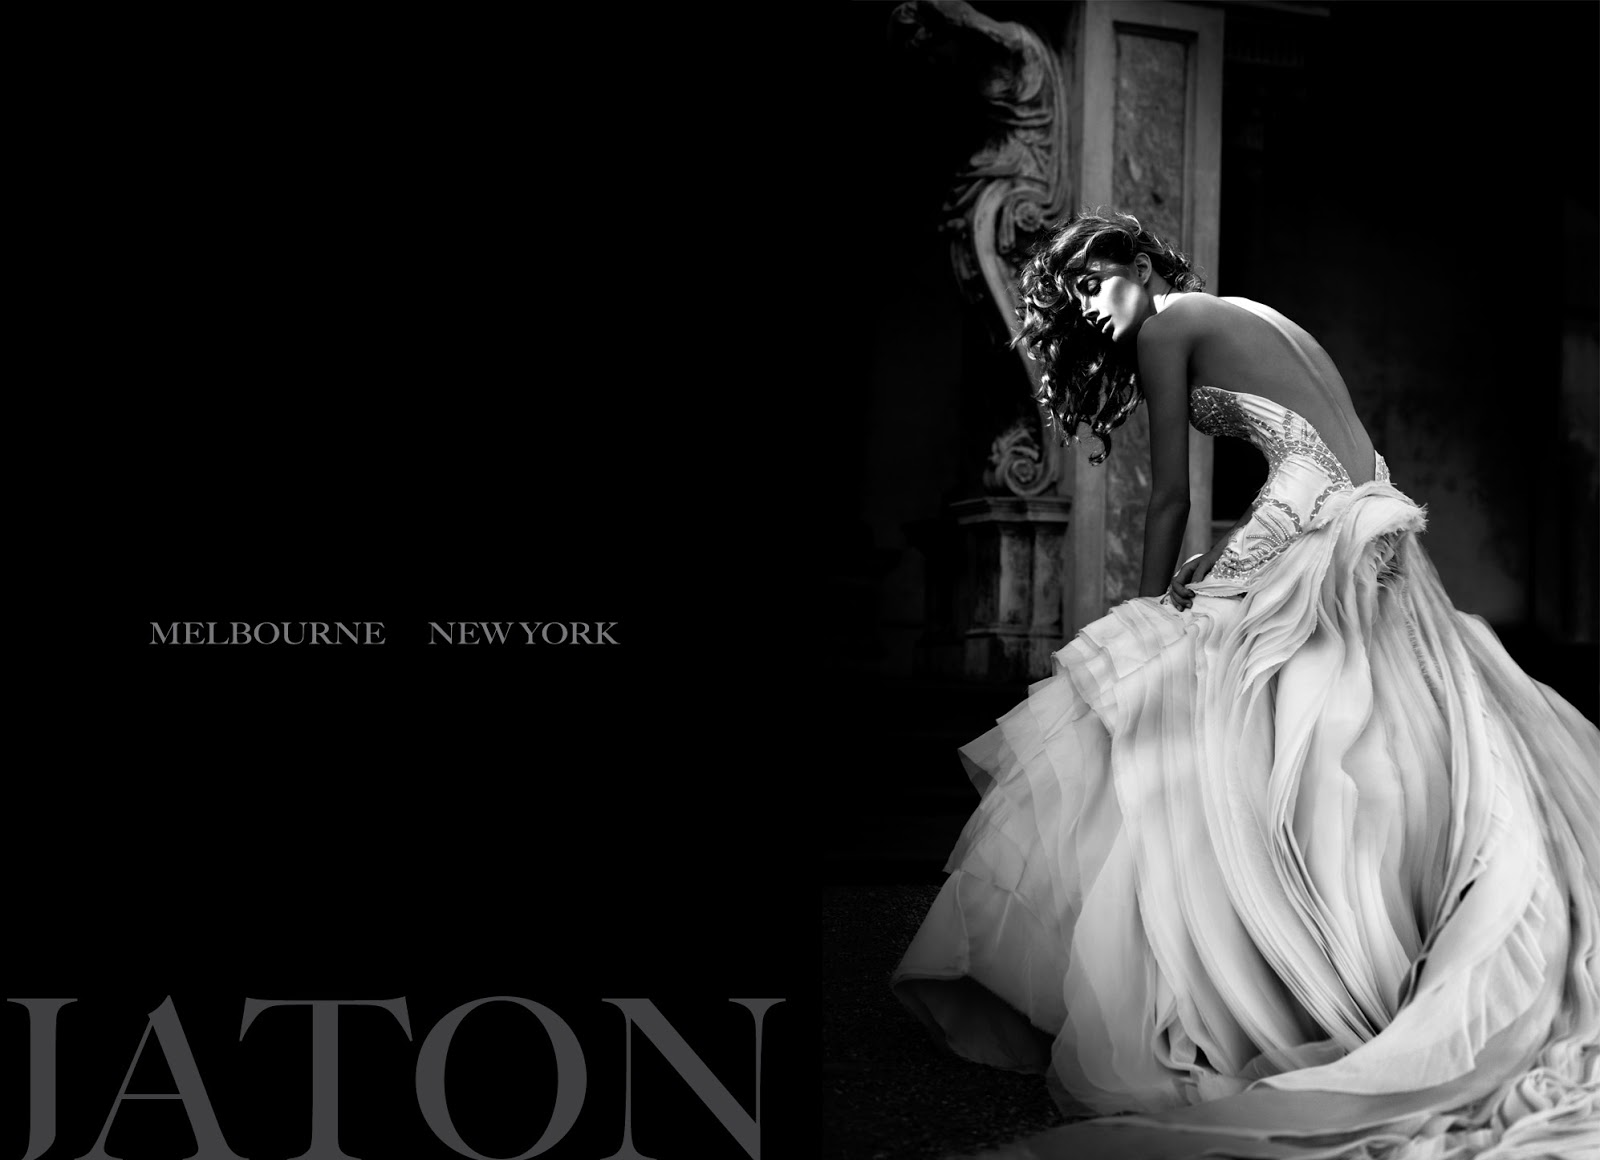 Wedding dresses j 39 aton couture for J aton wedding dress